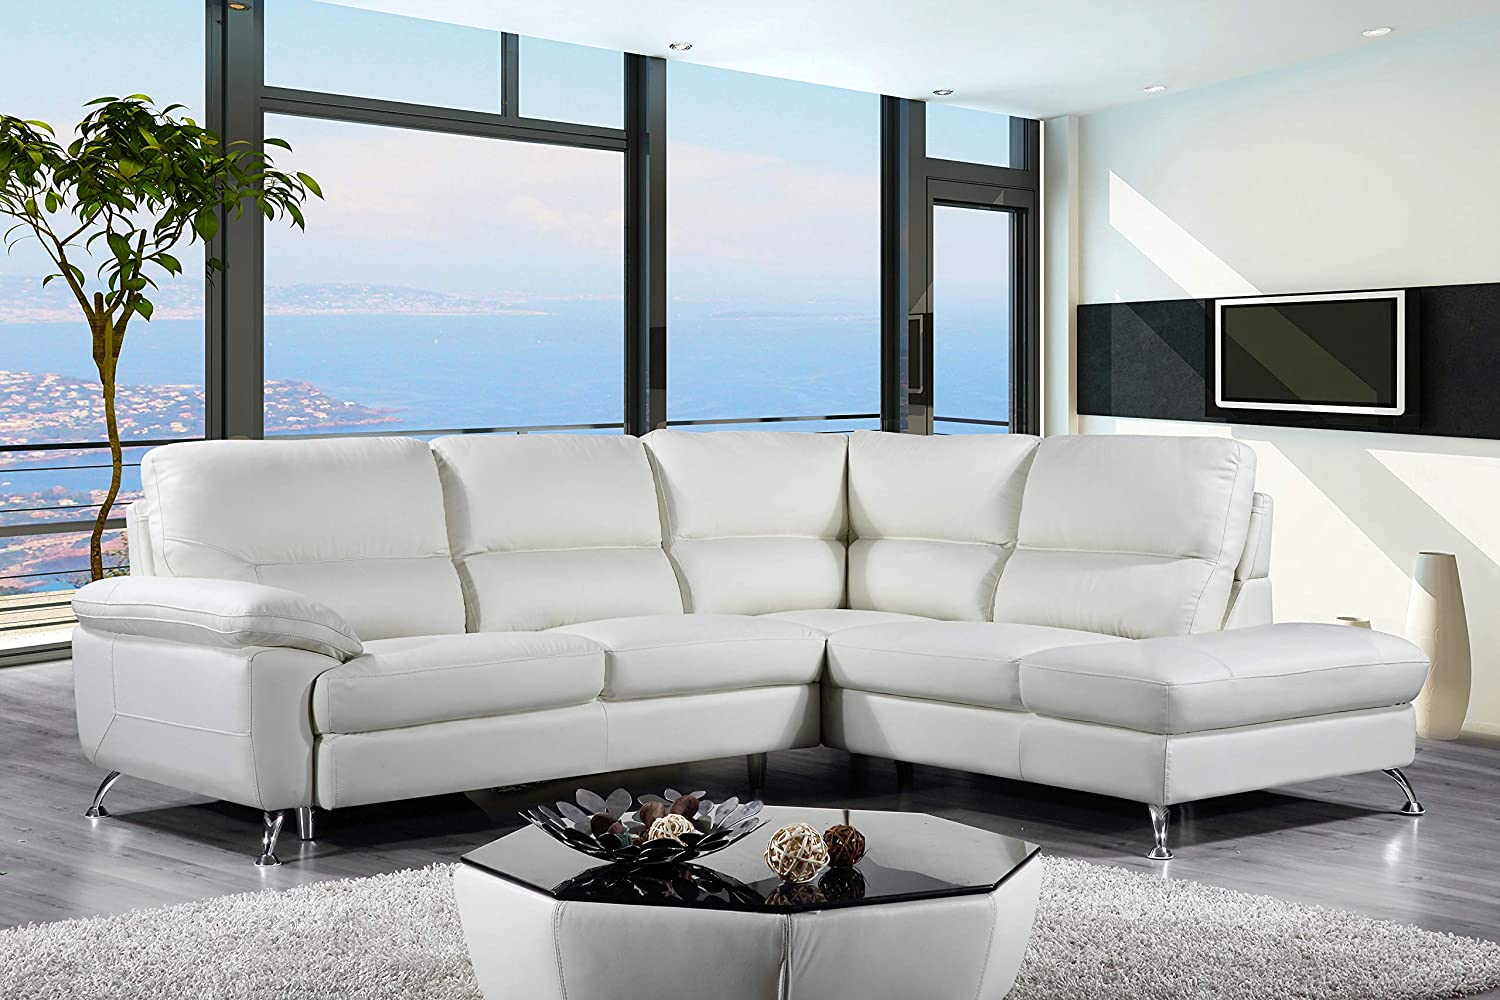 Cortesi Home Contemporary Orlando Genuine Leather Sectional Sofa with Right  Chaise Lounge, Off White 98\